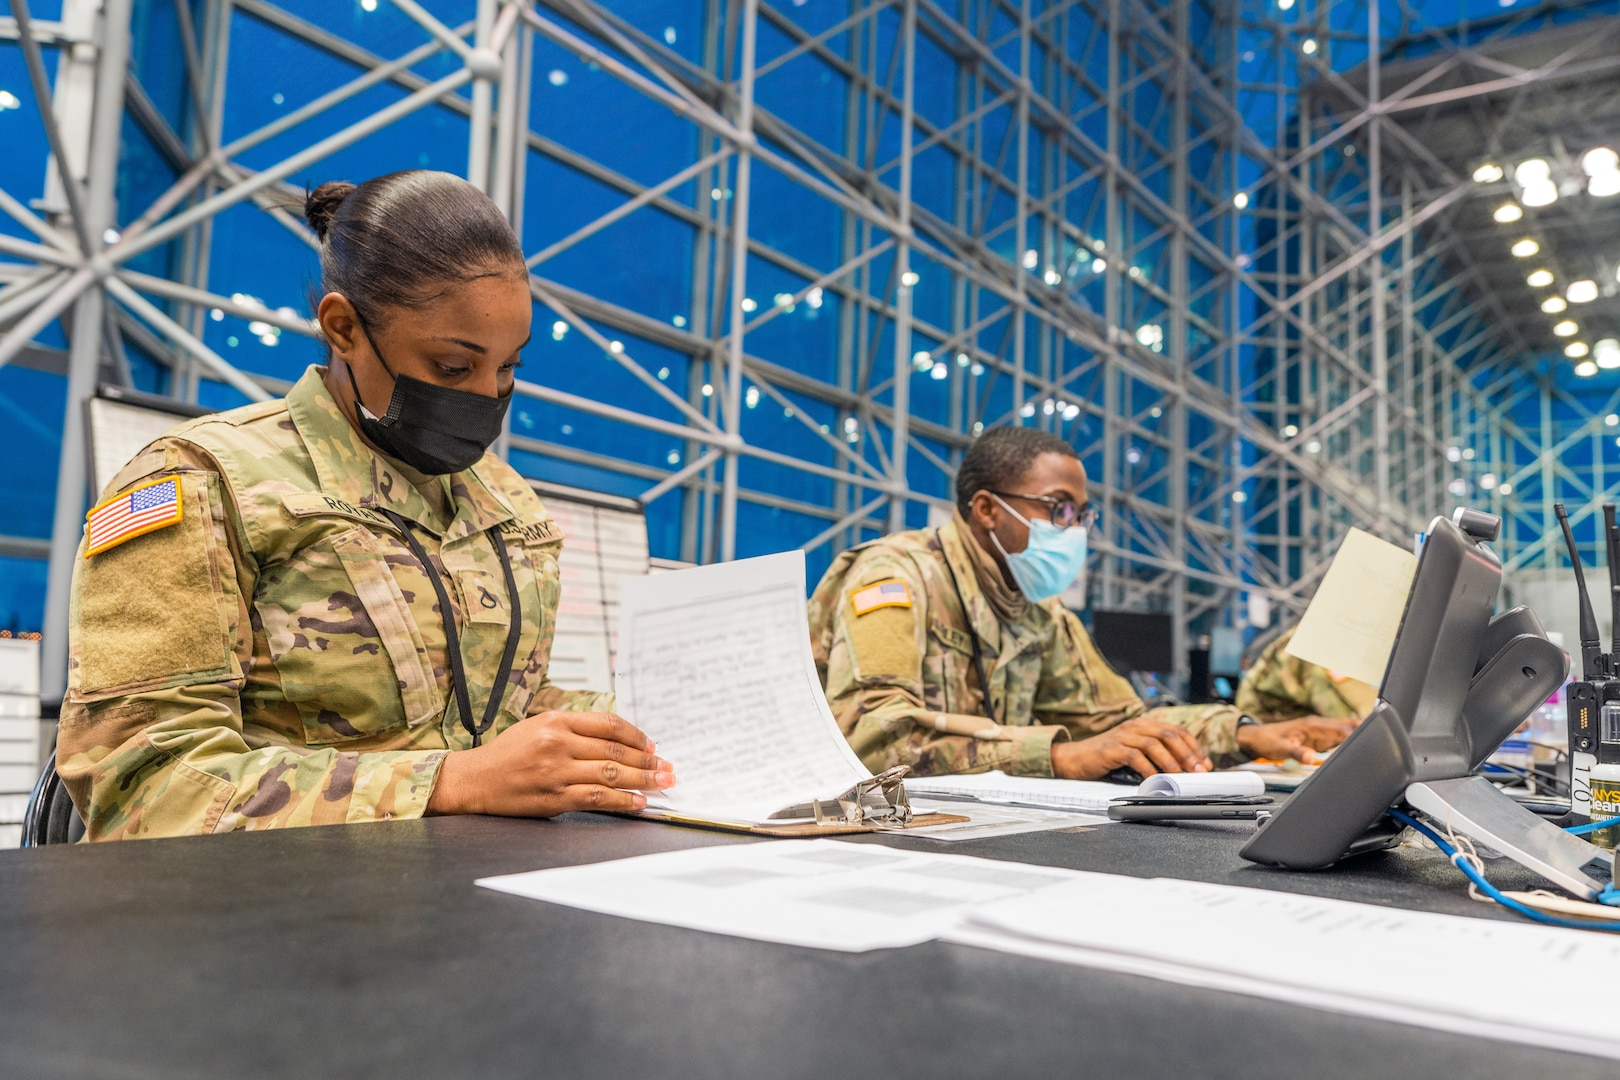 Soldiers prepare for next operational day in support of state efforts to provide mass COVID-19 vaccinations administered by New York State Department of Health, at Javits Convention Center in Manhattan, February 14, 2021 (U.S. Army National Guard/Sebastian Rothwyn)